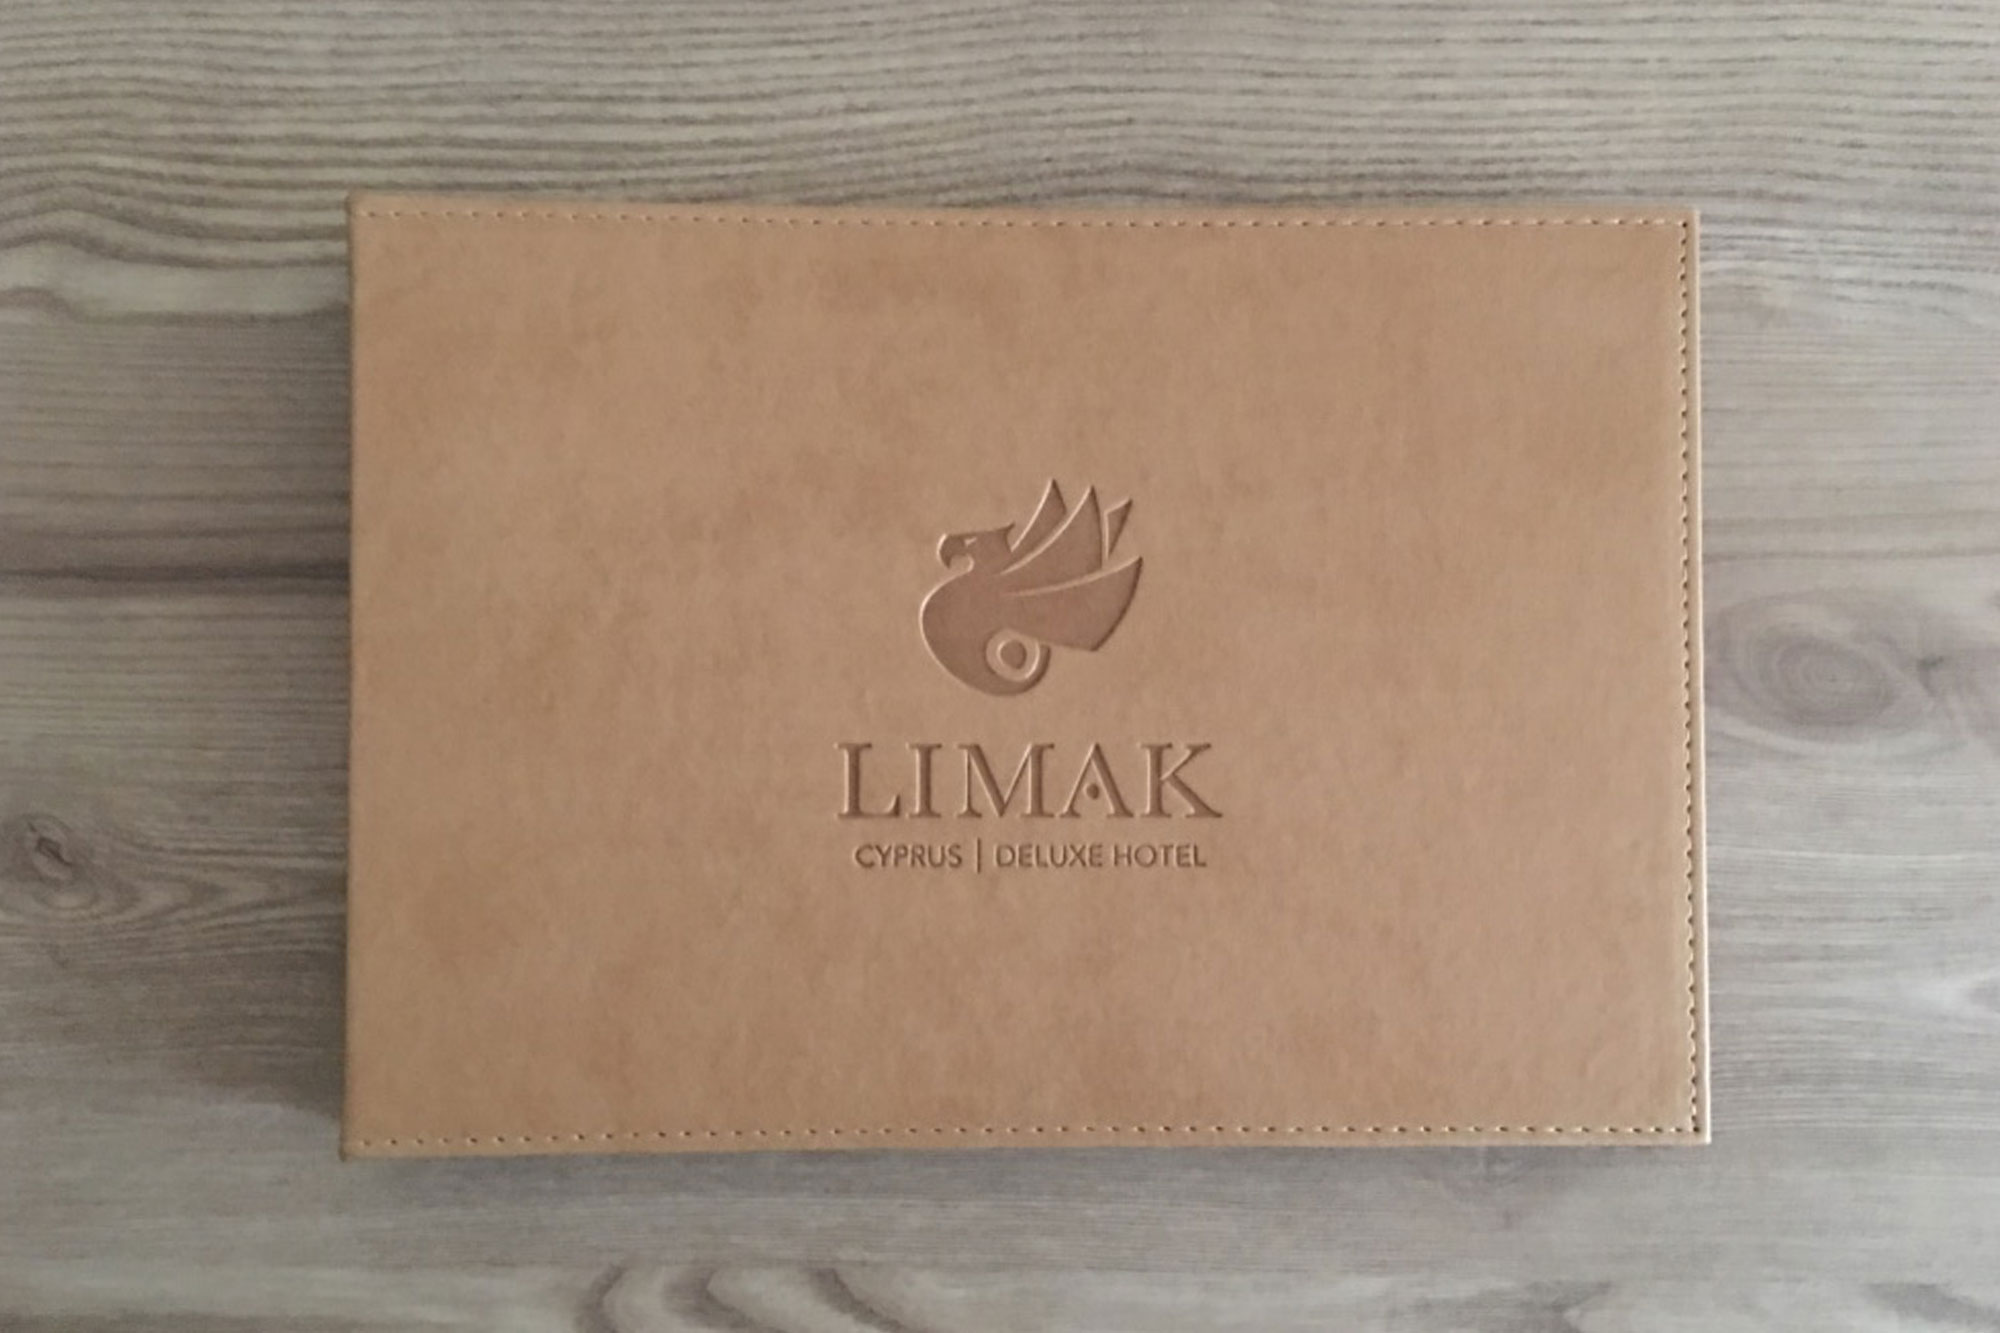 Limak Cyprus Deluxe Hotel Guide